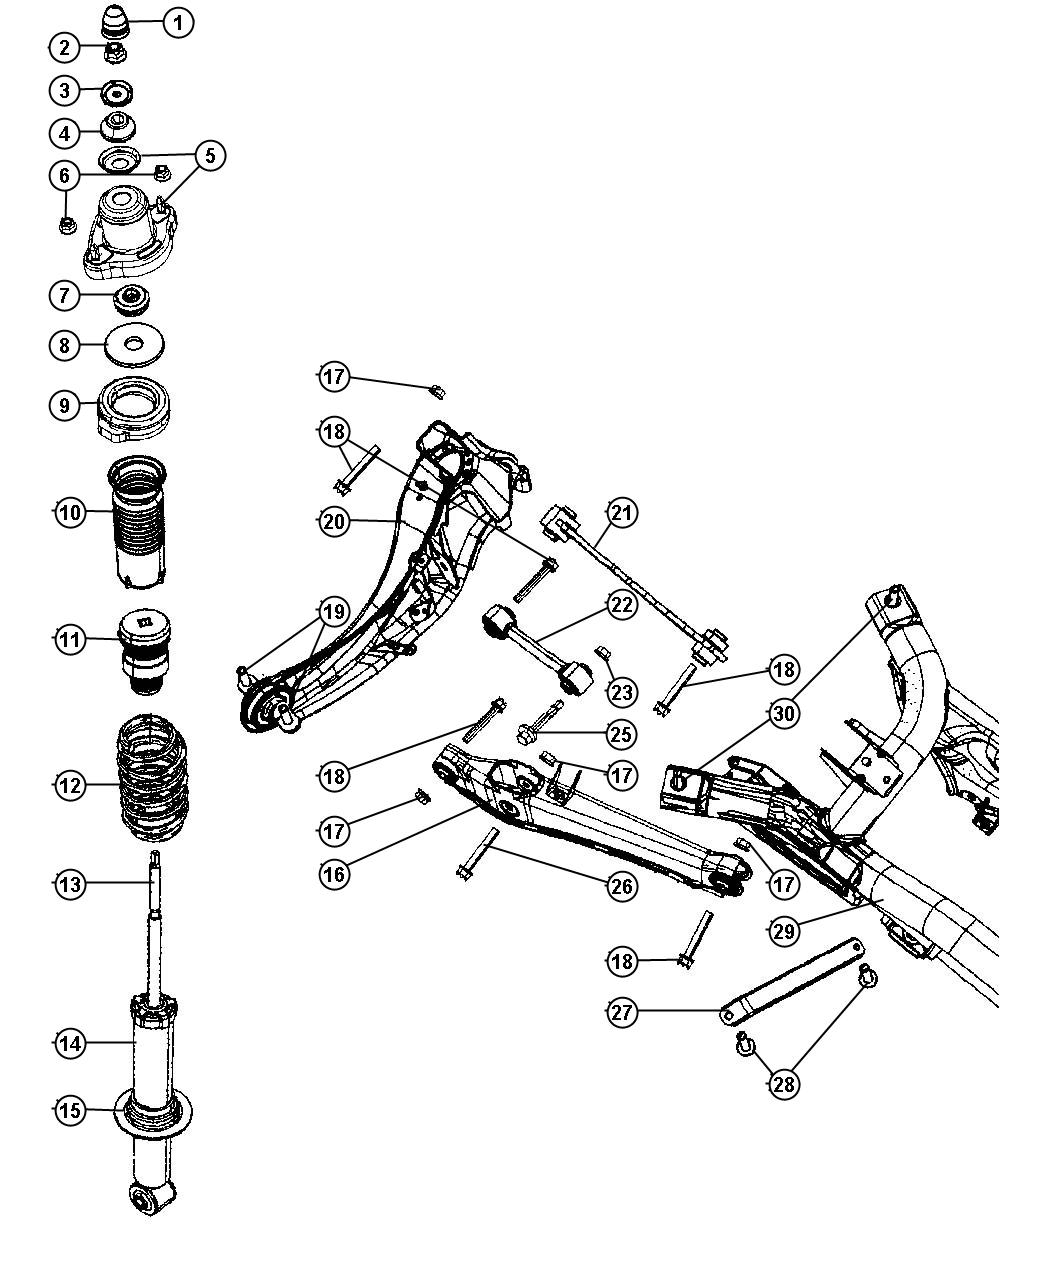 Audi A6 Timing Belt Wiring Diagrams. Audi. Auto Wiring Diagram